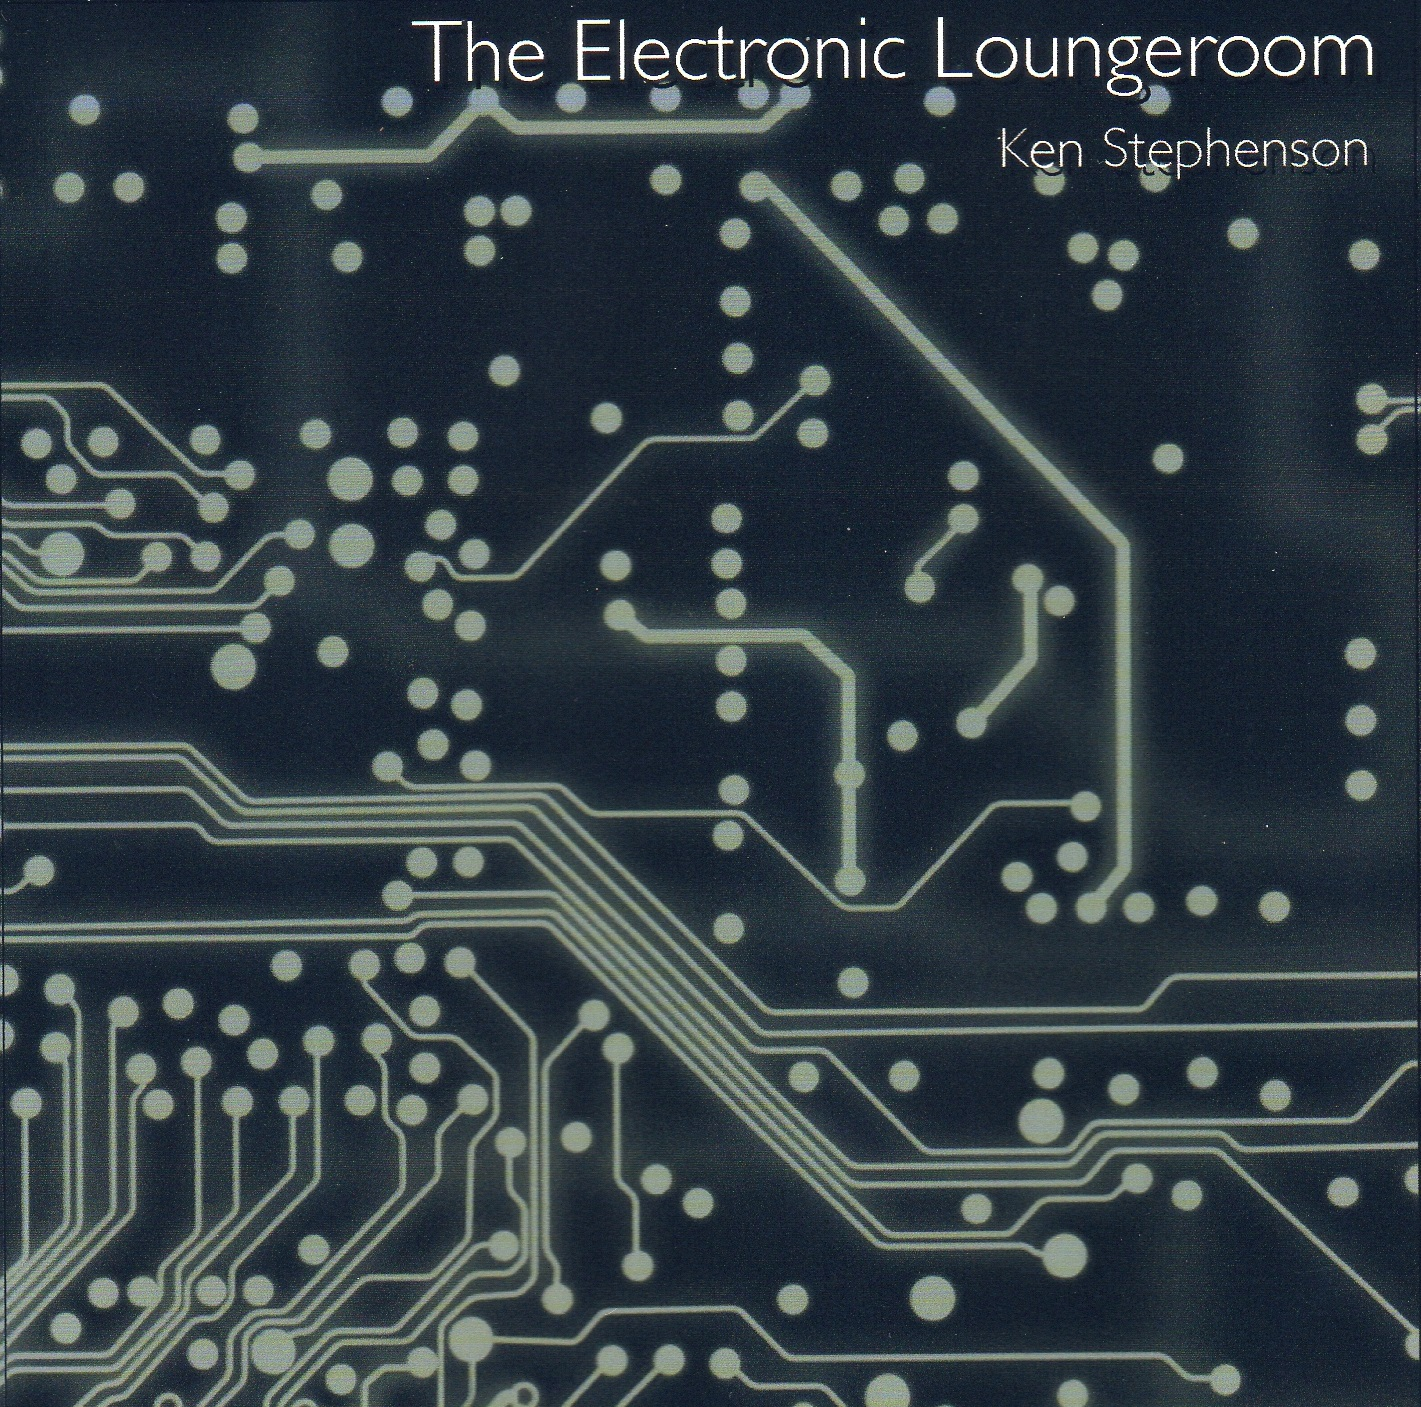 Ken Stephenson - The Electronic Loungeroom